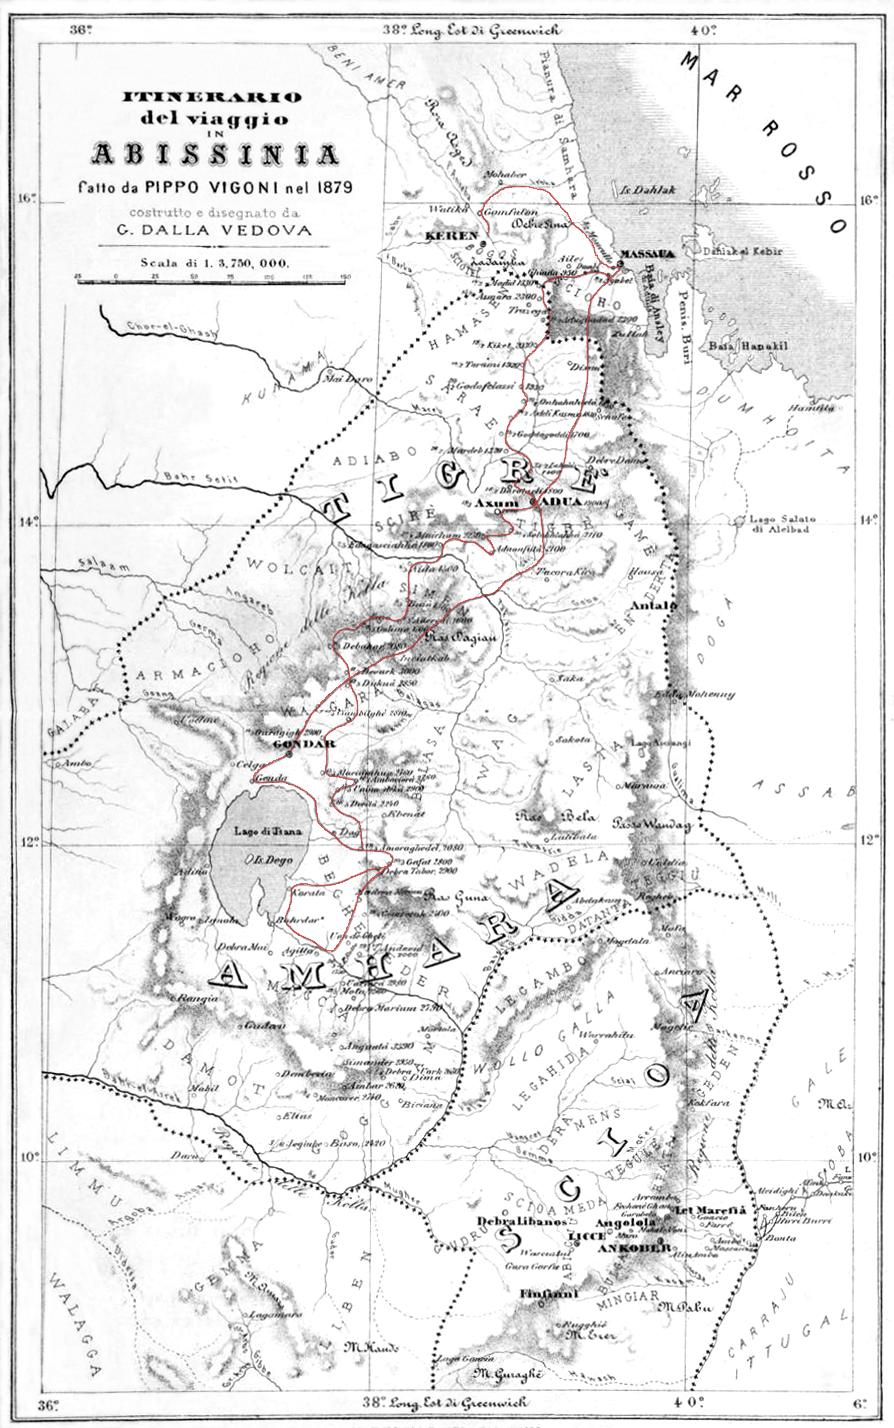 Welkait Tsegede part of historical Tigray or Gonder let the maps